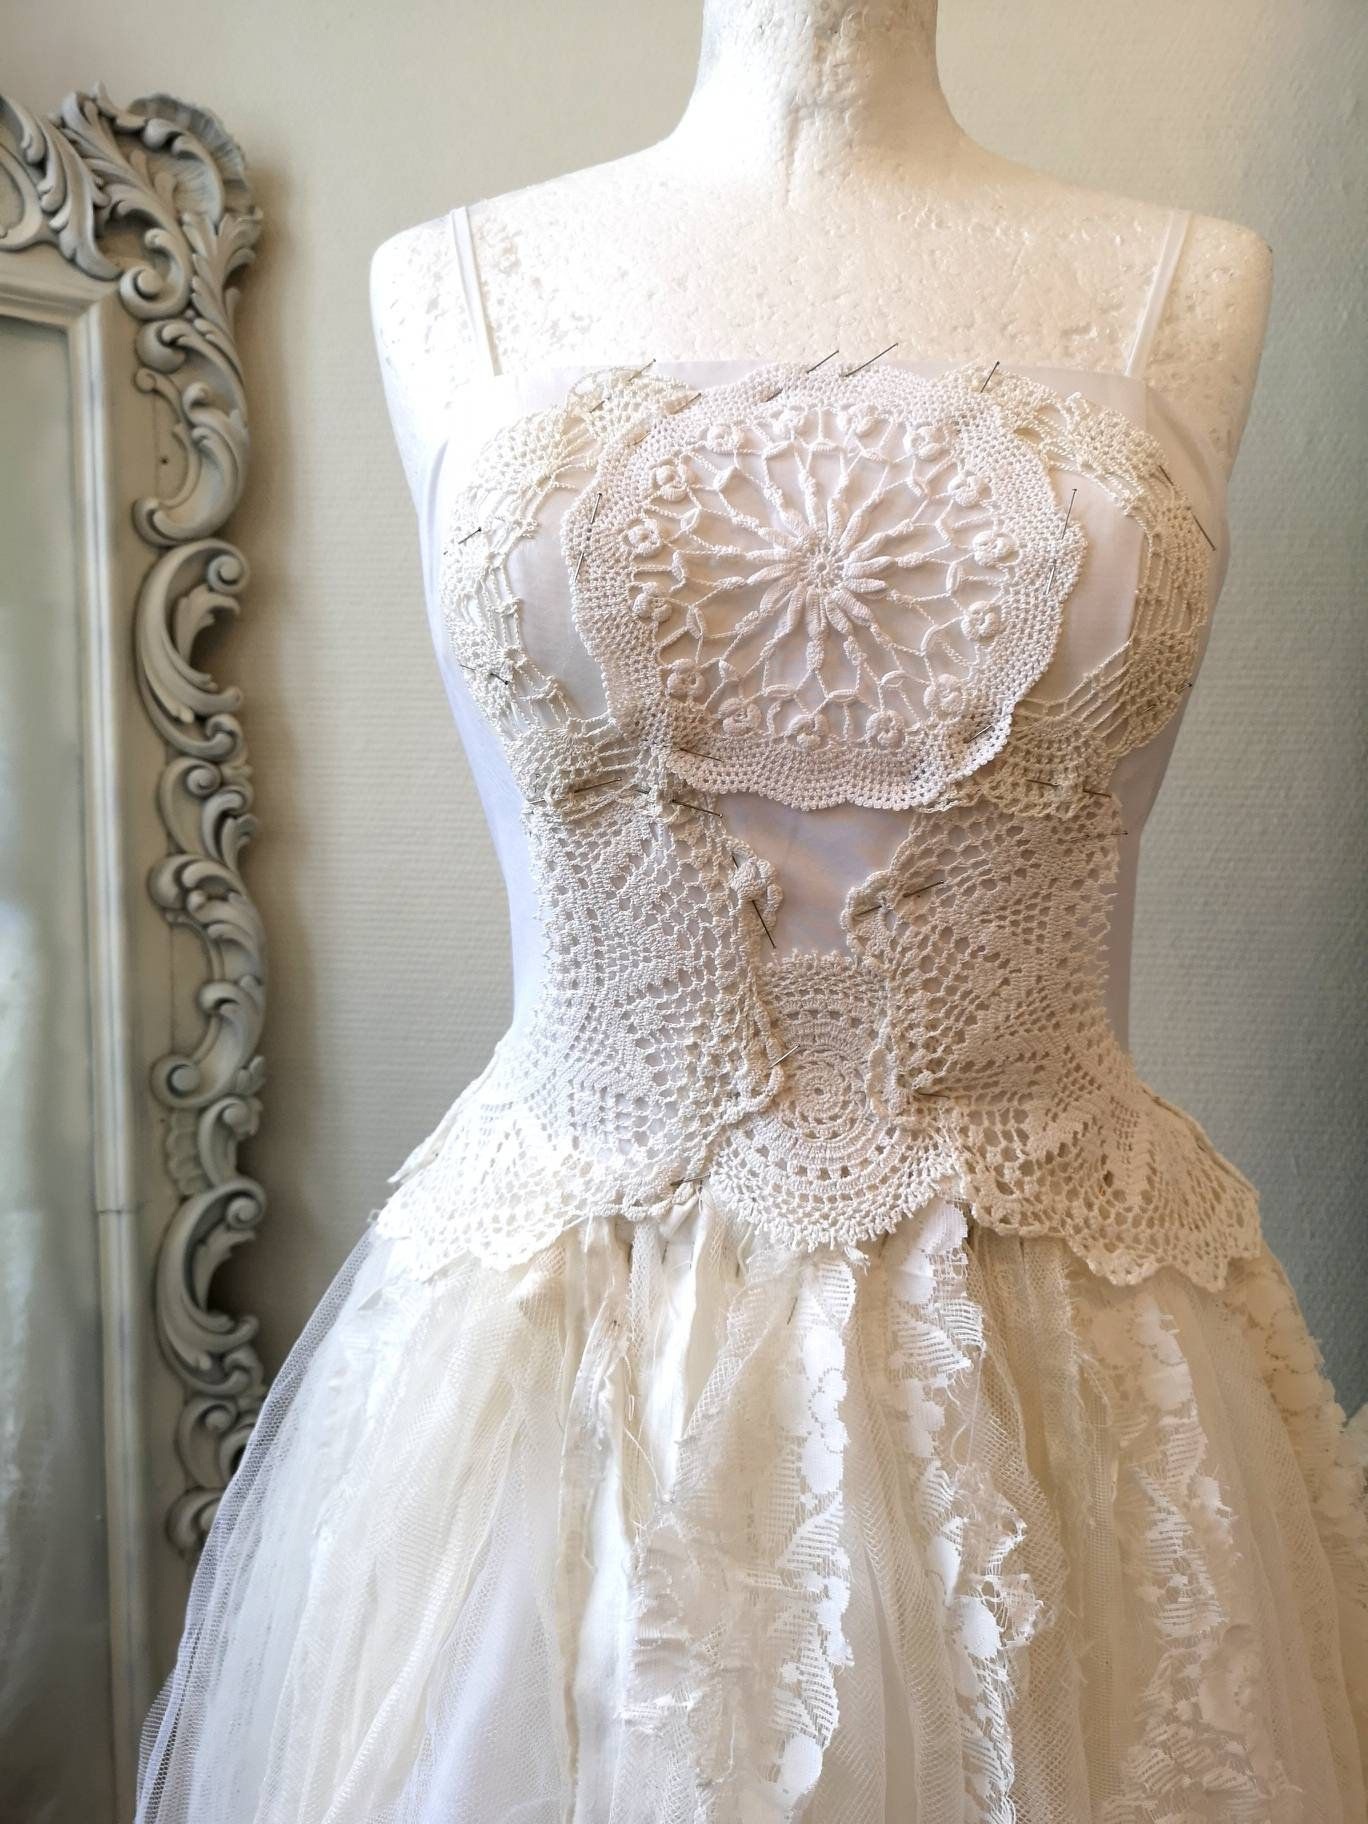 White wedding dressboho wedding lagenlookbeach wedding dress